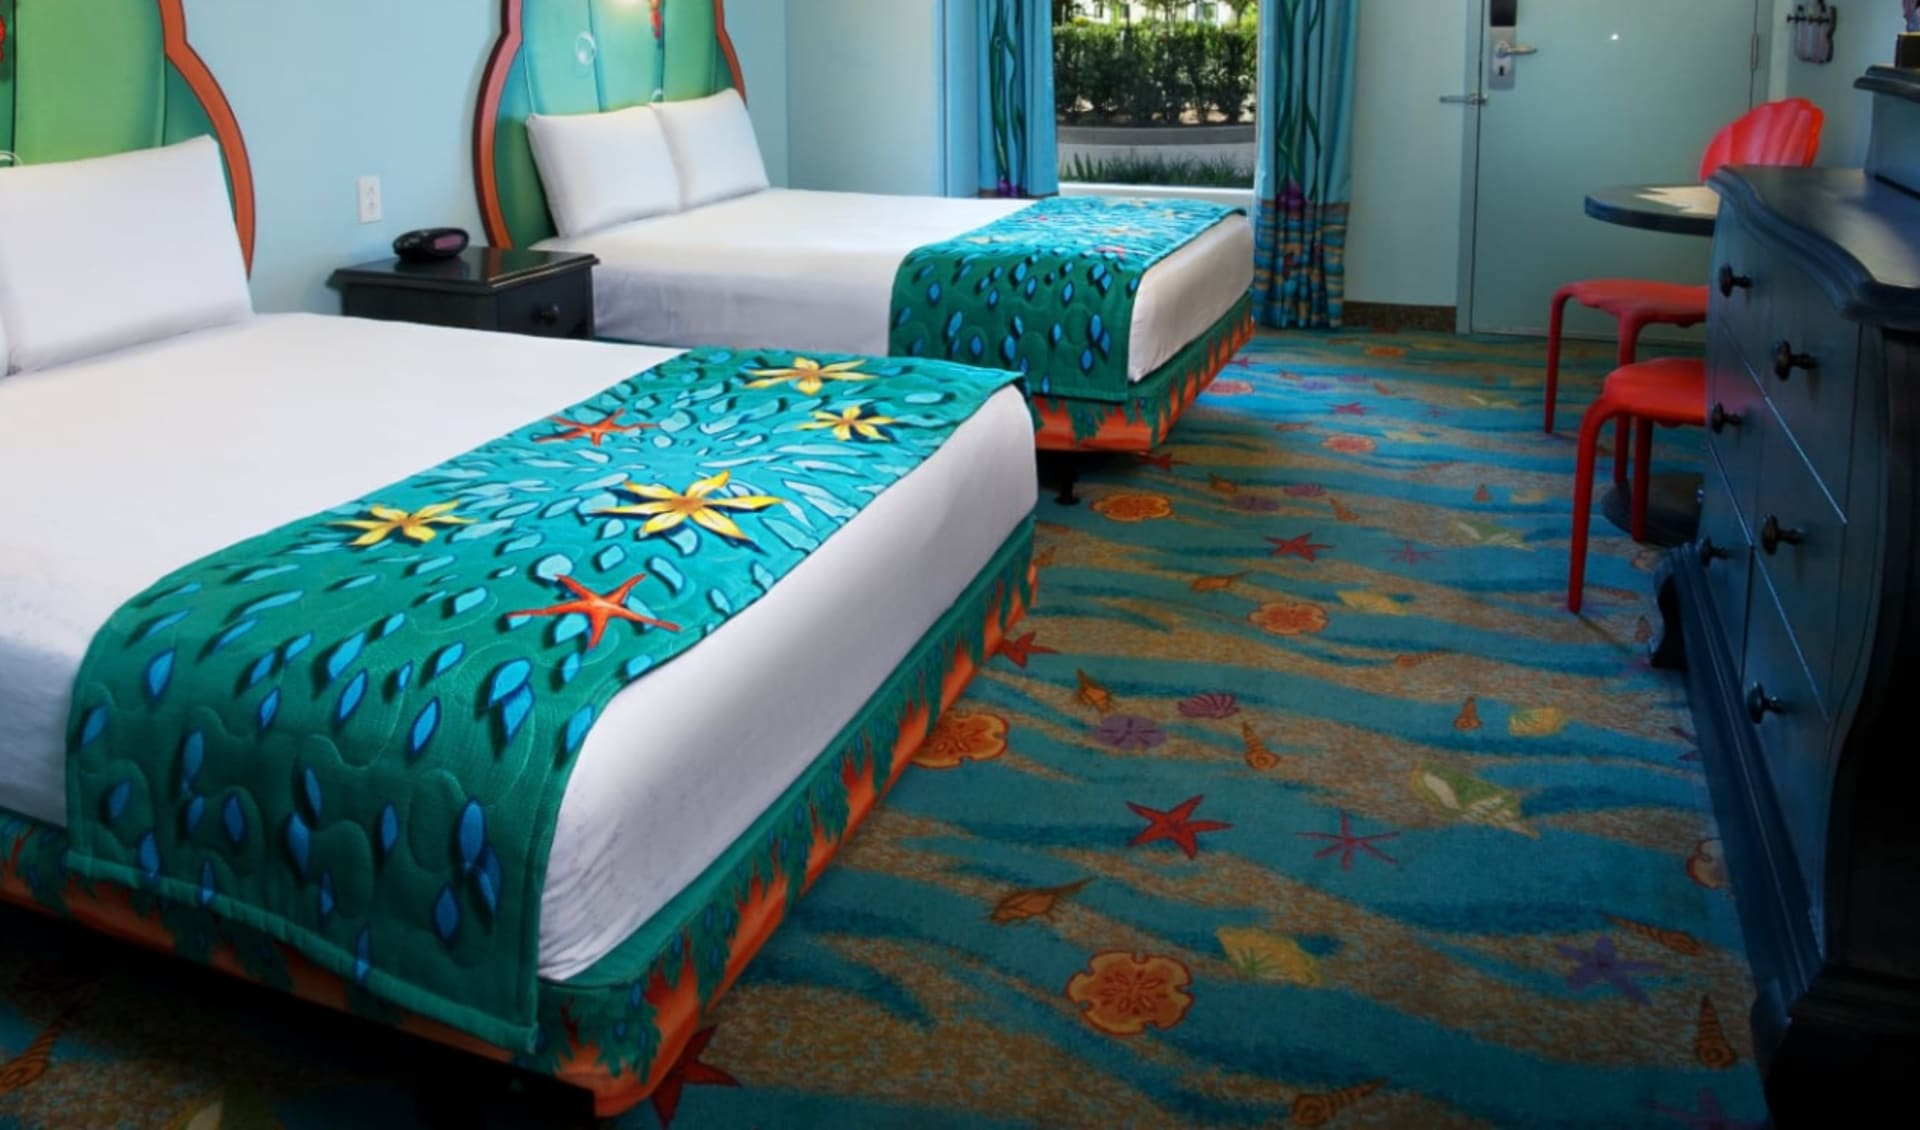 Disney's Art of Animation Resort in Lake Buena Vista: Zimmer_Disney's Art of Animation Resort_Little Mermaid Room_Bonotel